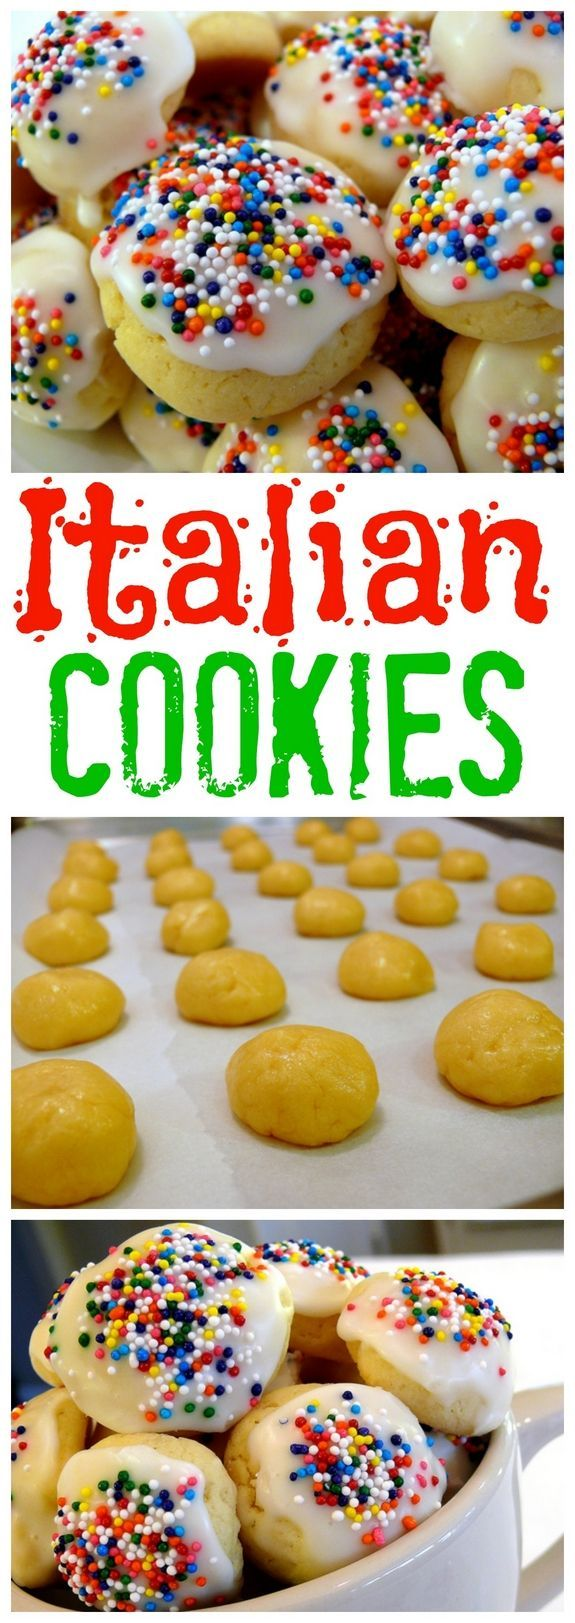 Italian Cookies from NoblePig.com | рецепт | Pinterest